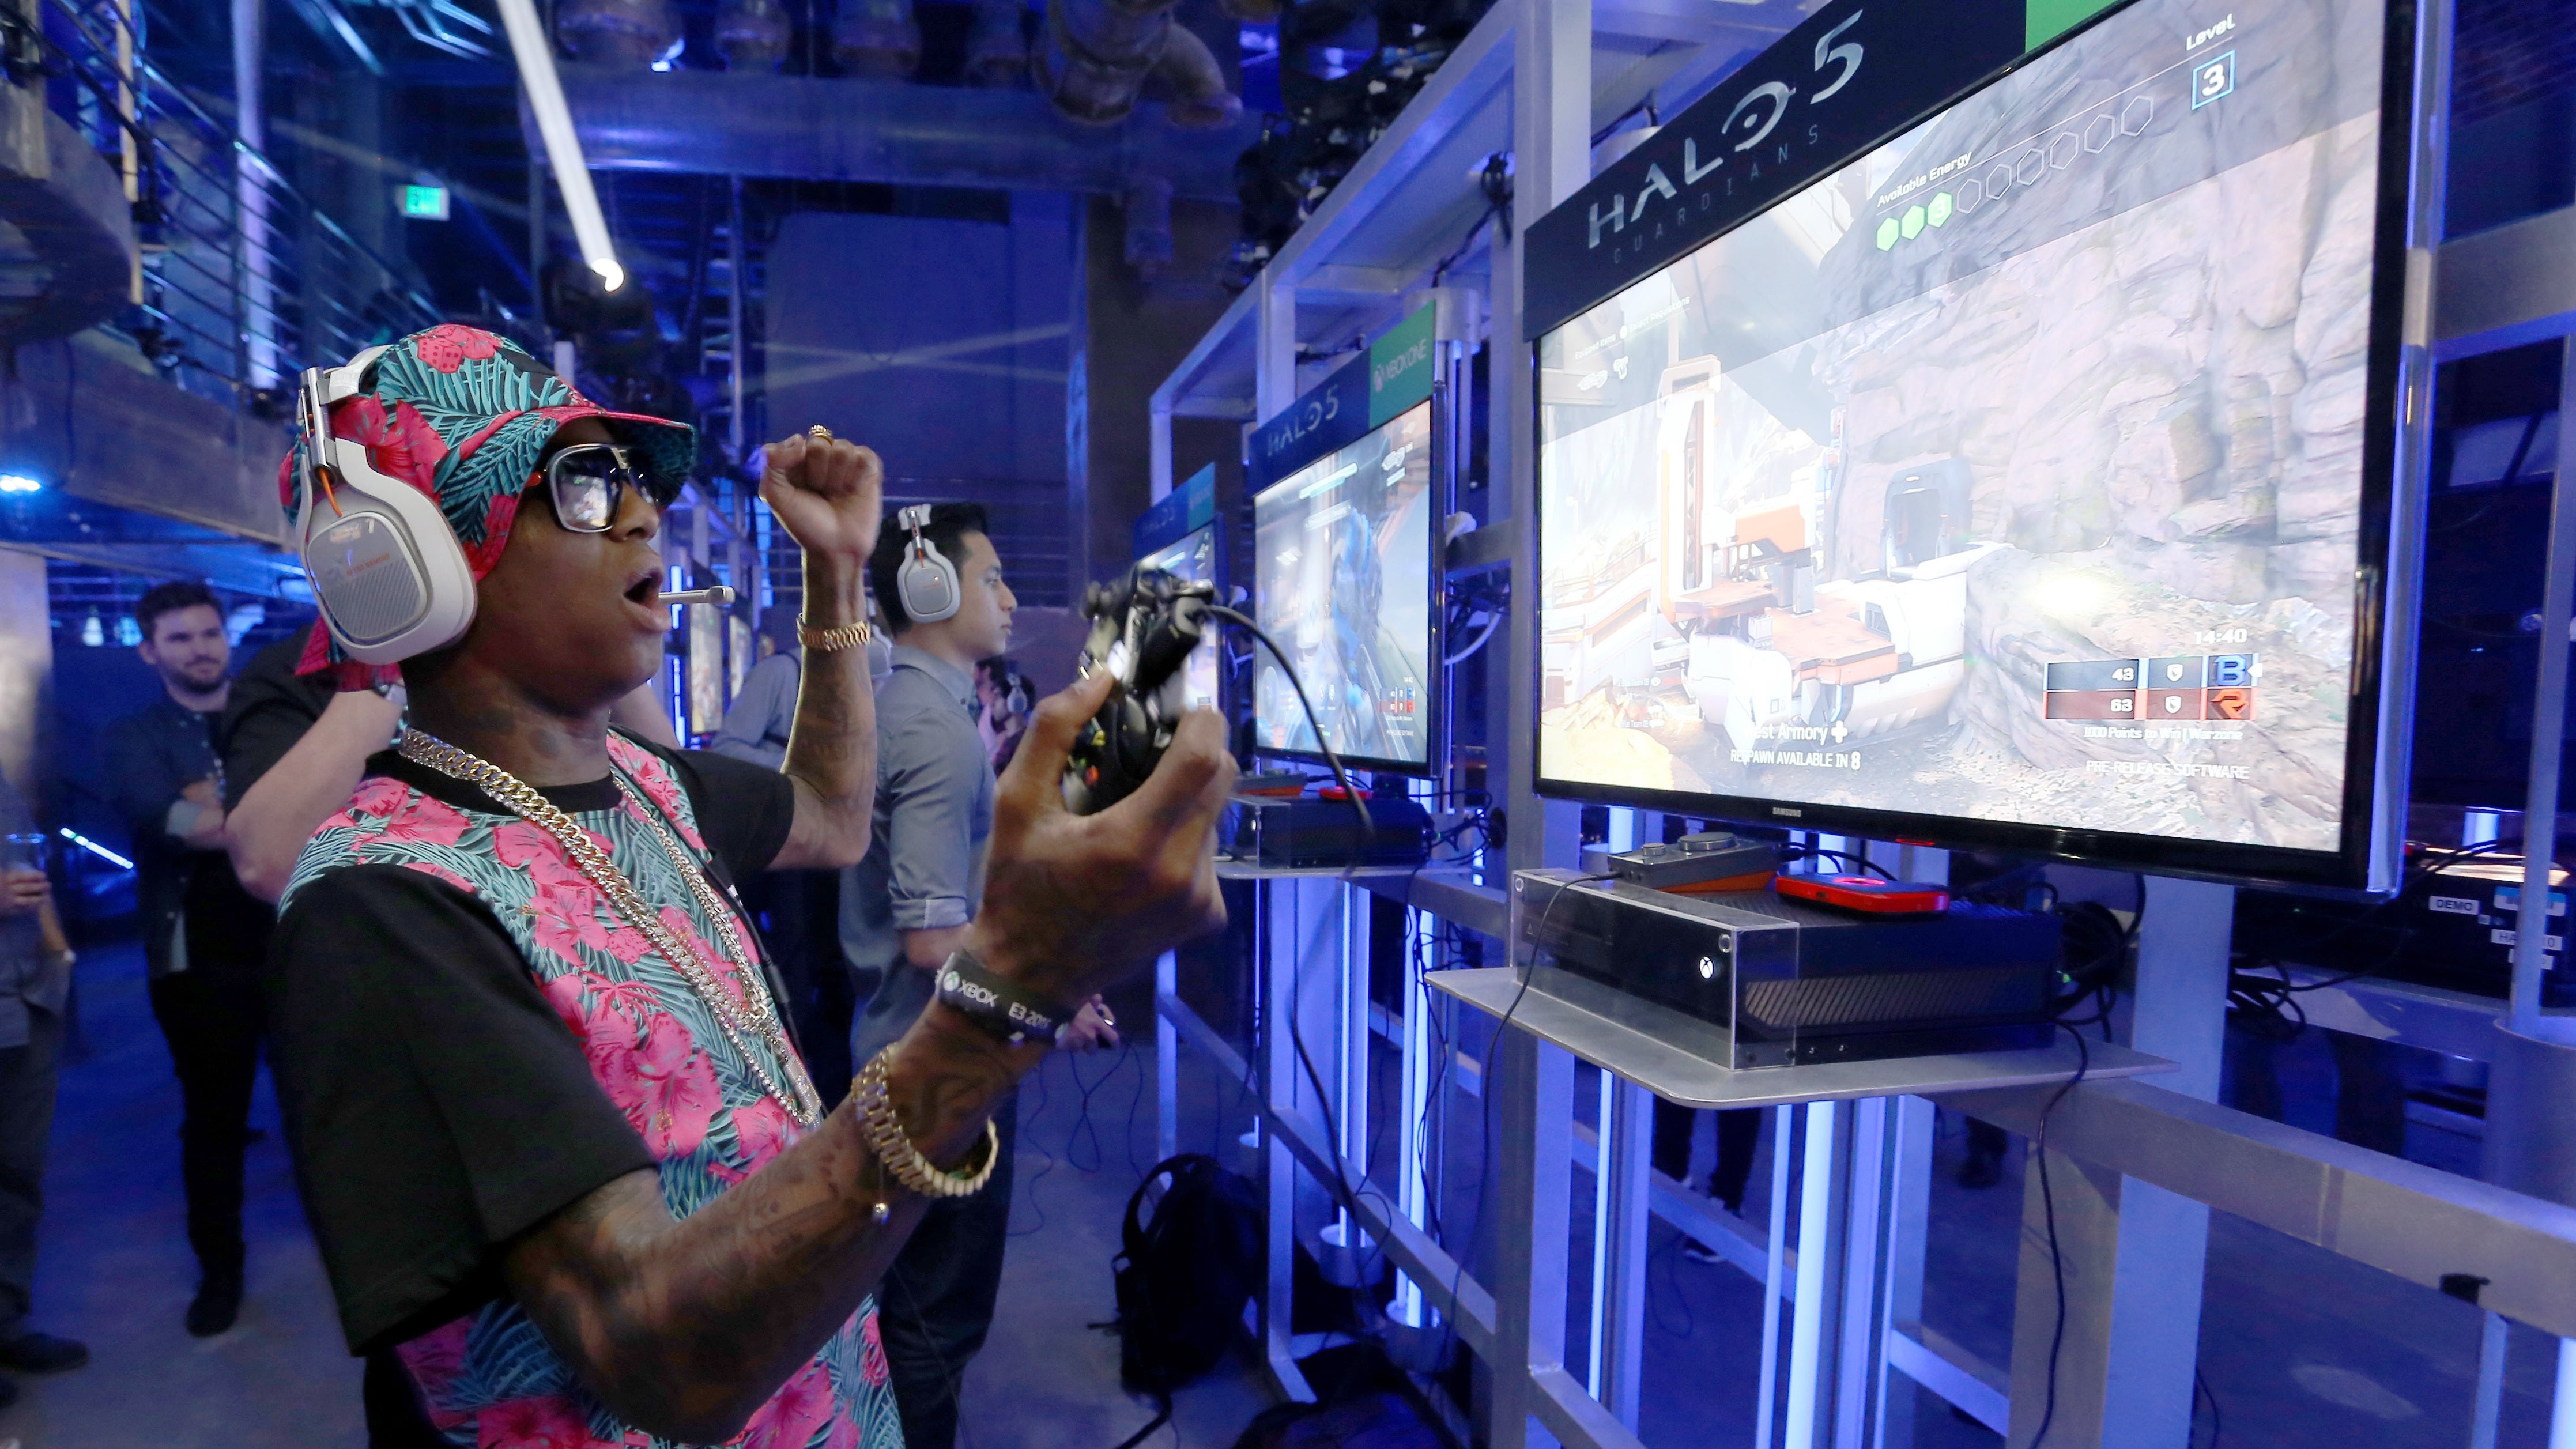 RIP Soulja Boy's Knock-Off Nintendo Gameboy Advance/Neo Geo/PS Vita/Etc.